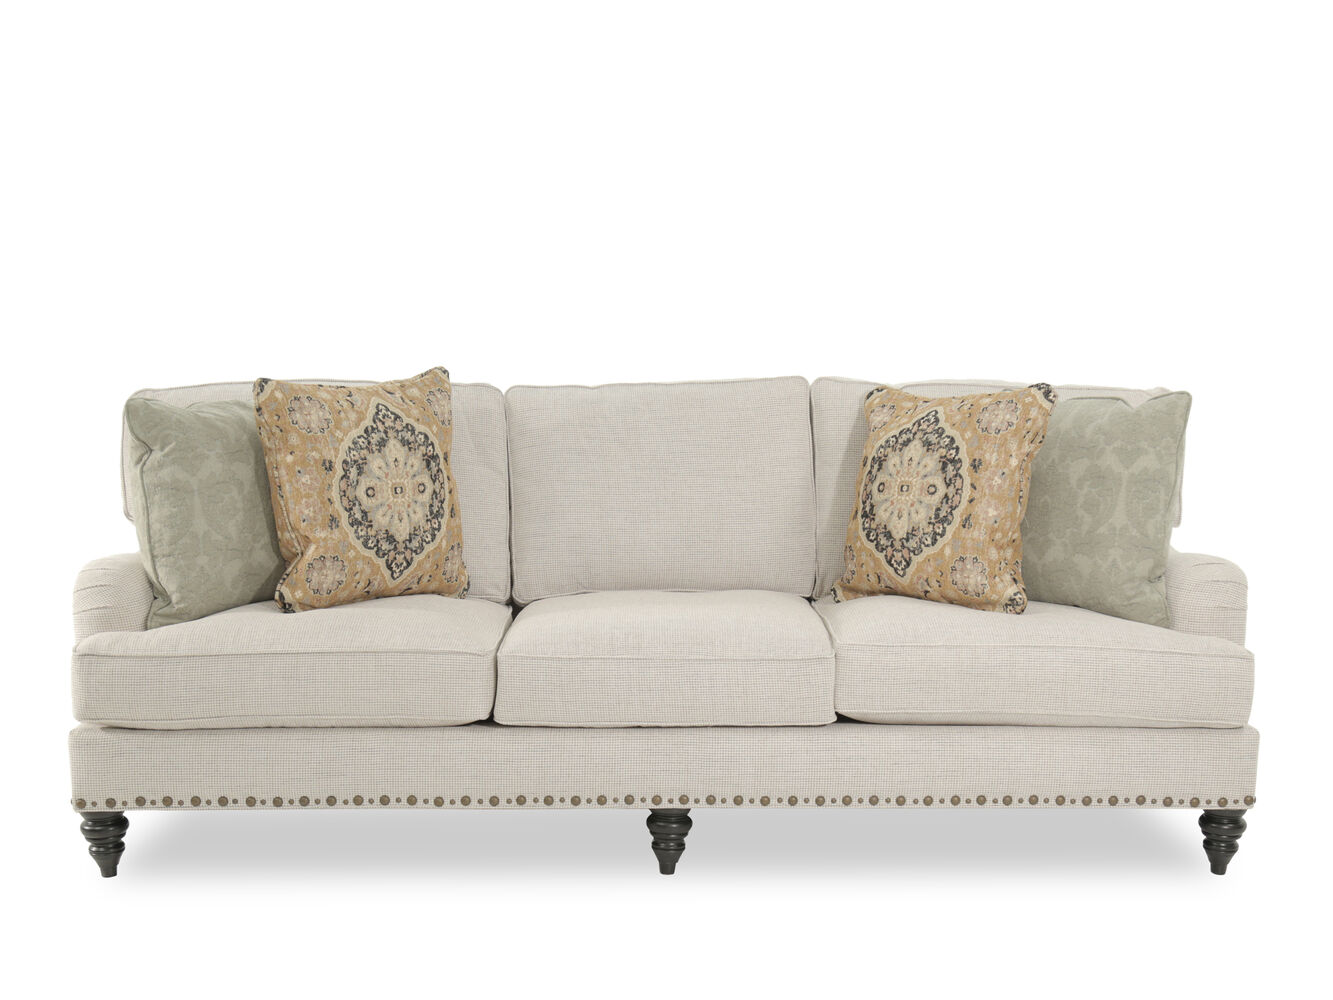 Broyhill Harrison Sofa Images 1000 28 Images Broyhill Furniture Harrison Sofa 67513 Sofas